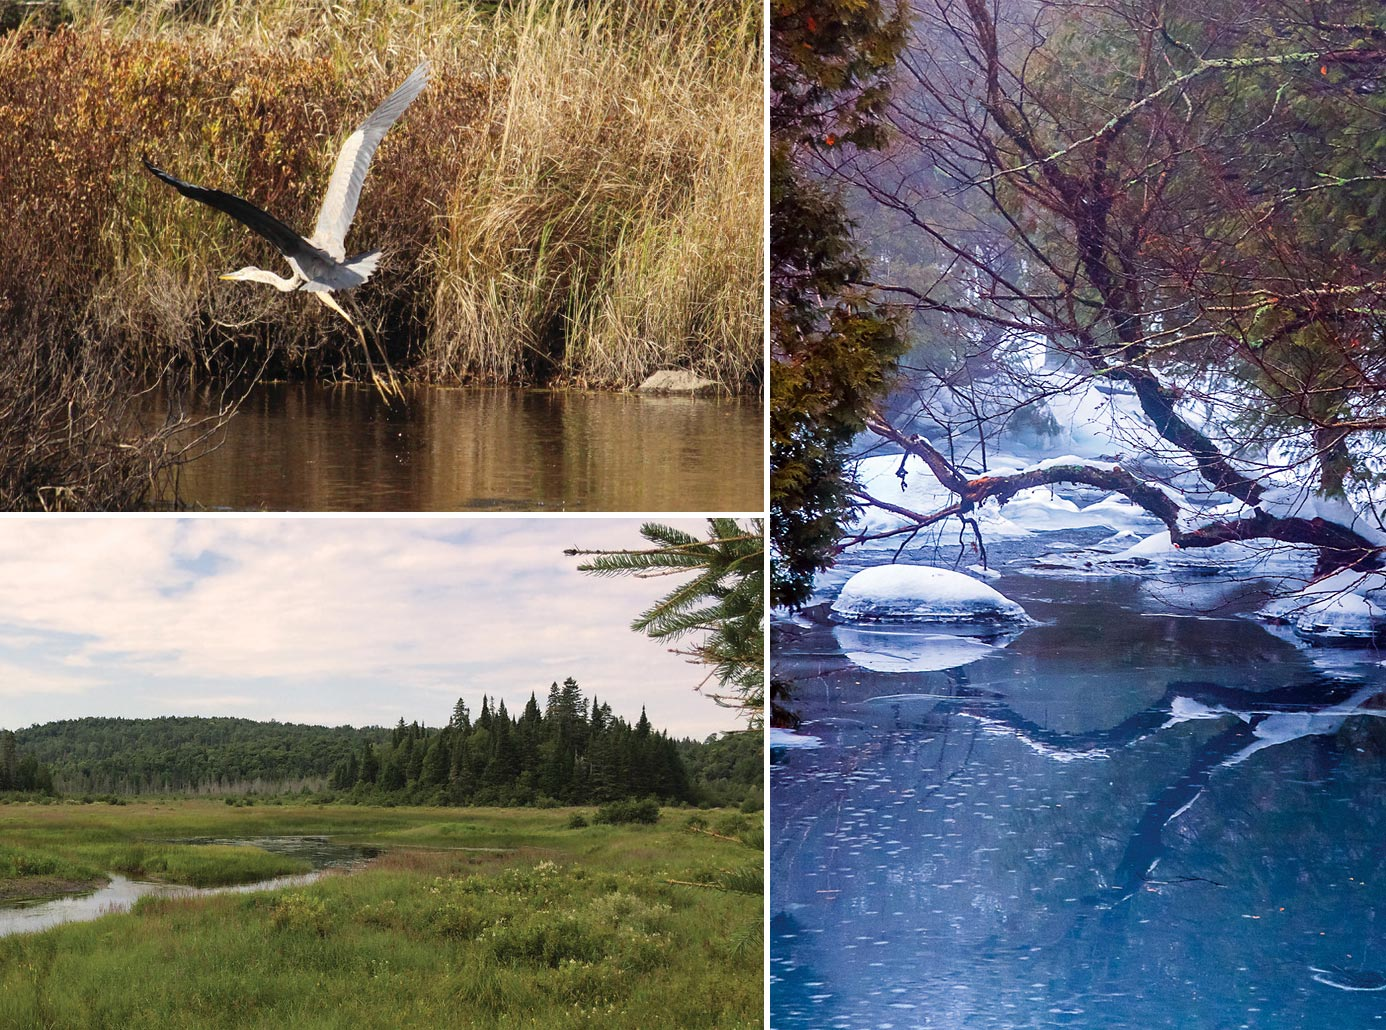 Ruisseau Jackson Nature Reserve brings 215 acres of new conservation to Morin Heights